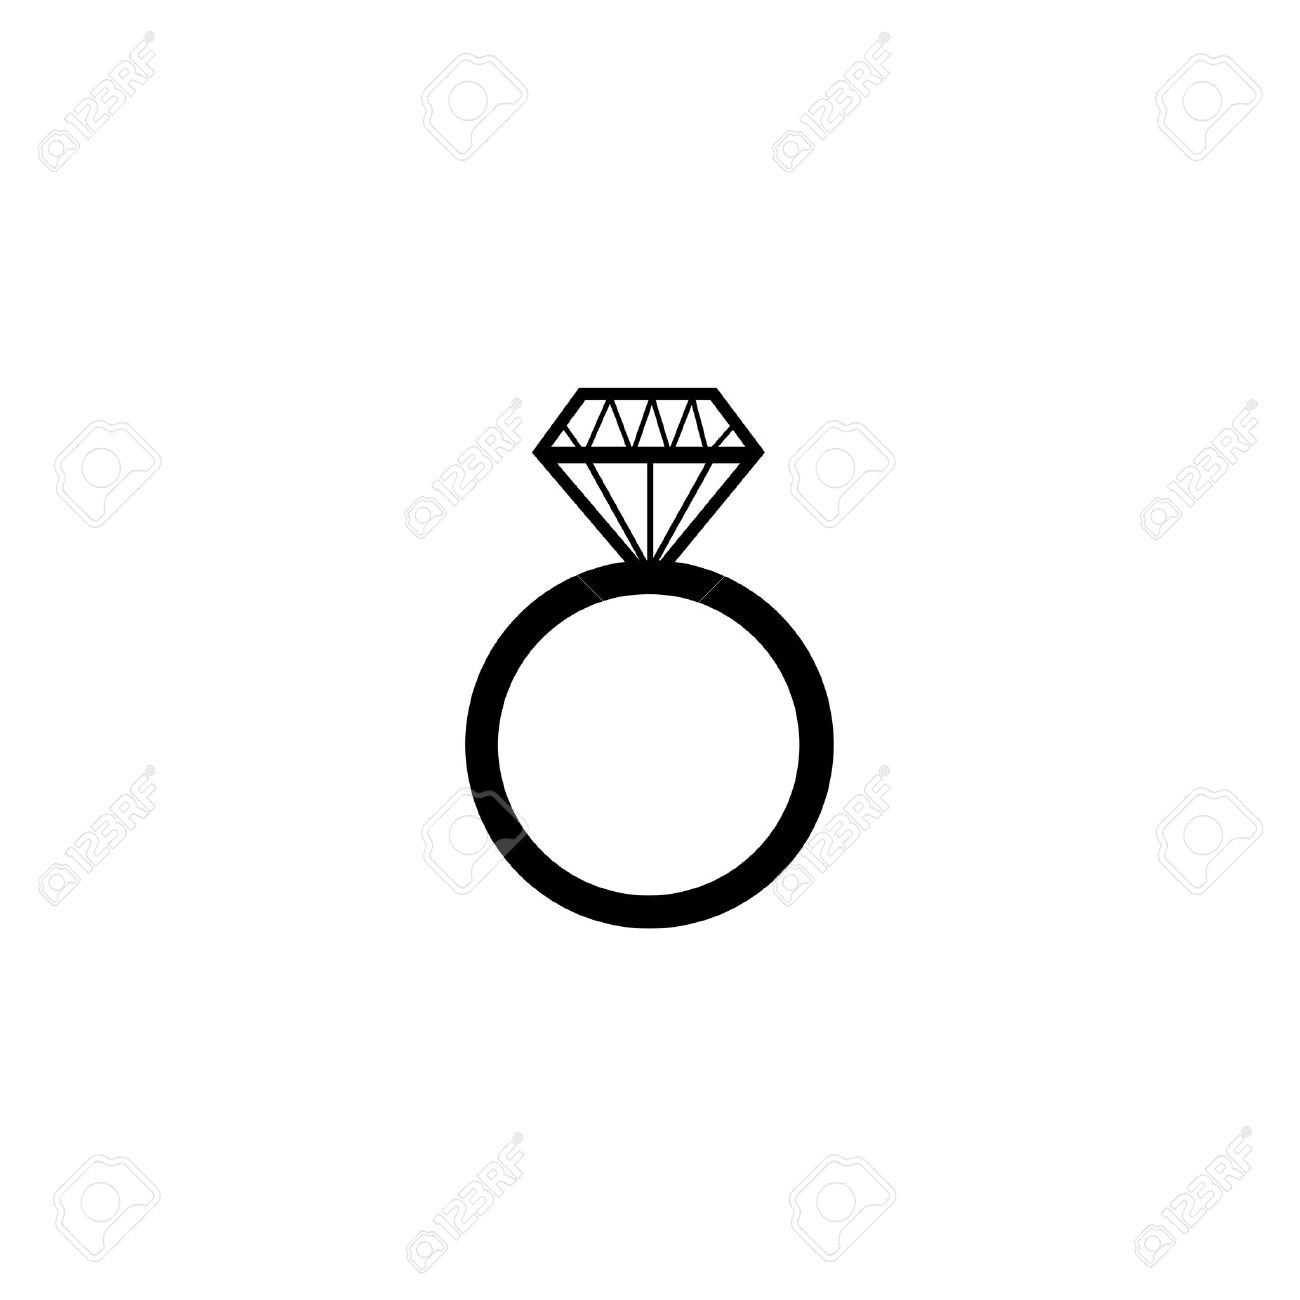 Diamond Engagement Ring Vector Symbol Royalty Free Cliparts Vectors